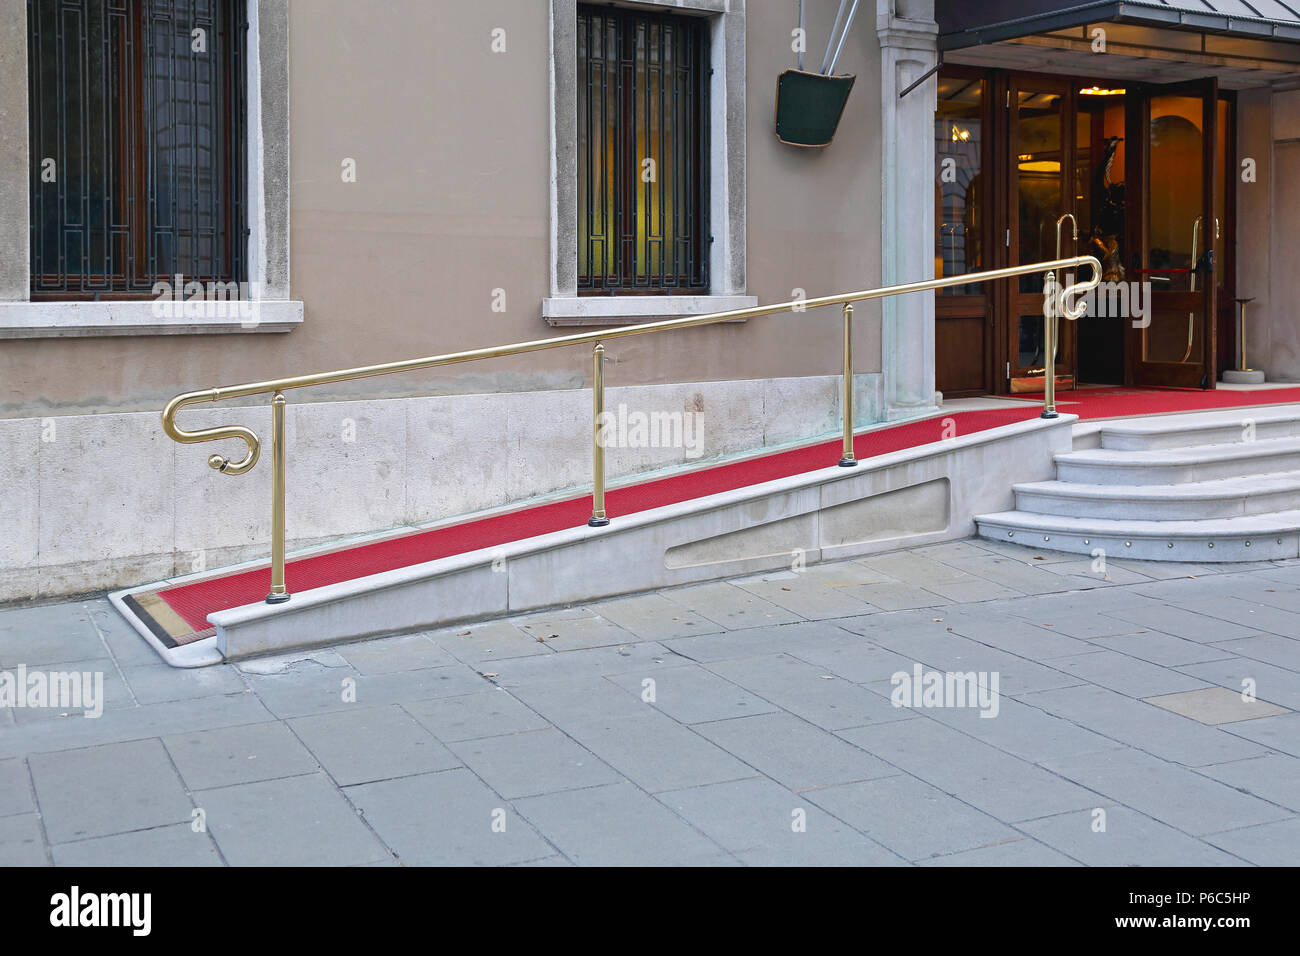 Wheelchair Ramp With Red Carpet for Easy Access in Building - Stock Image